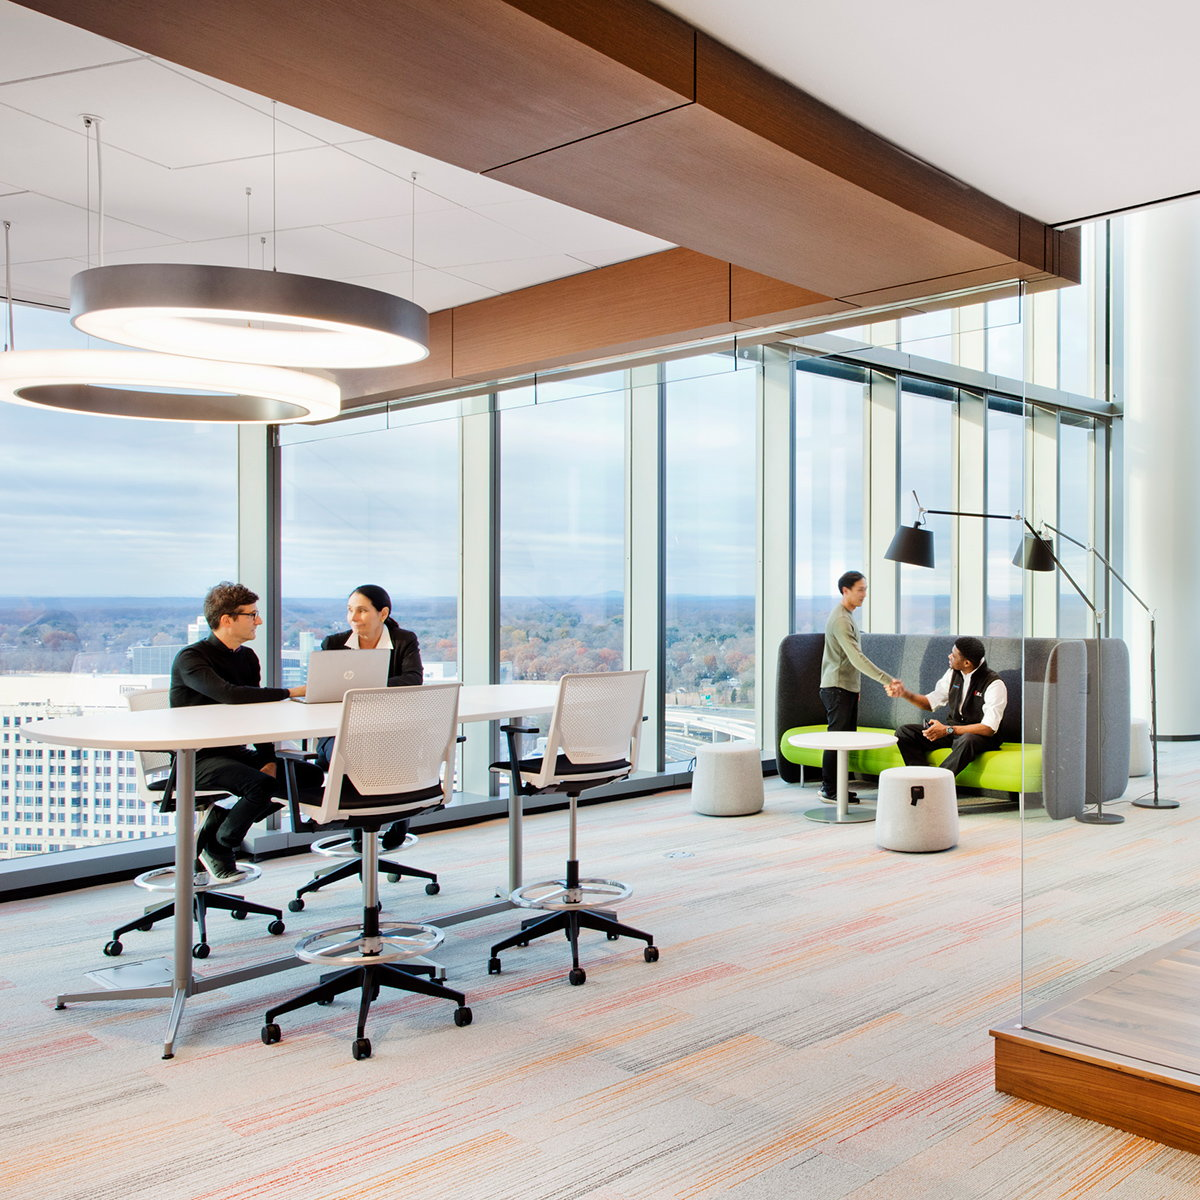 Capital One Releases Results of 2019 Workplace Design Survey